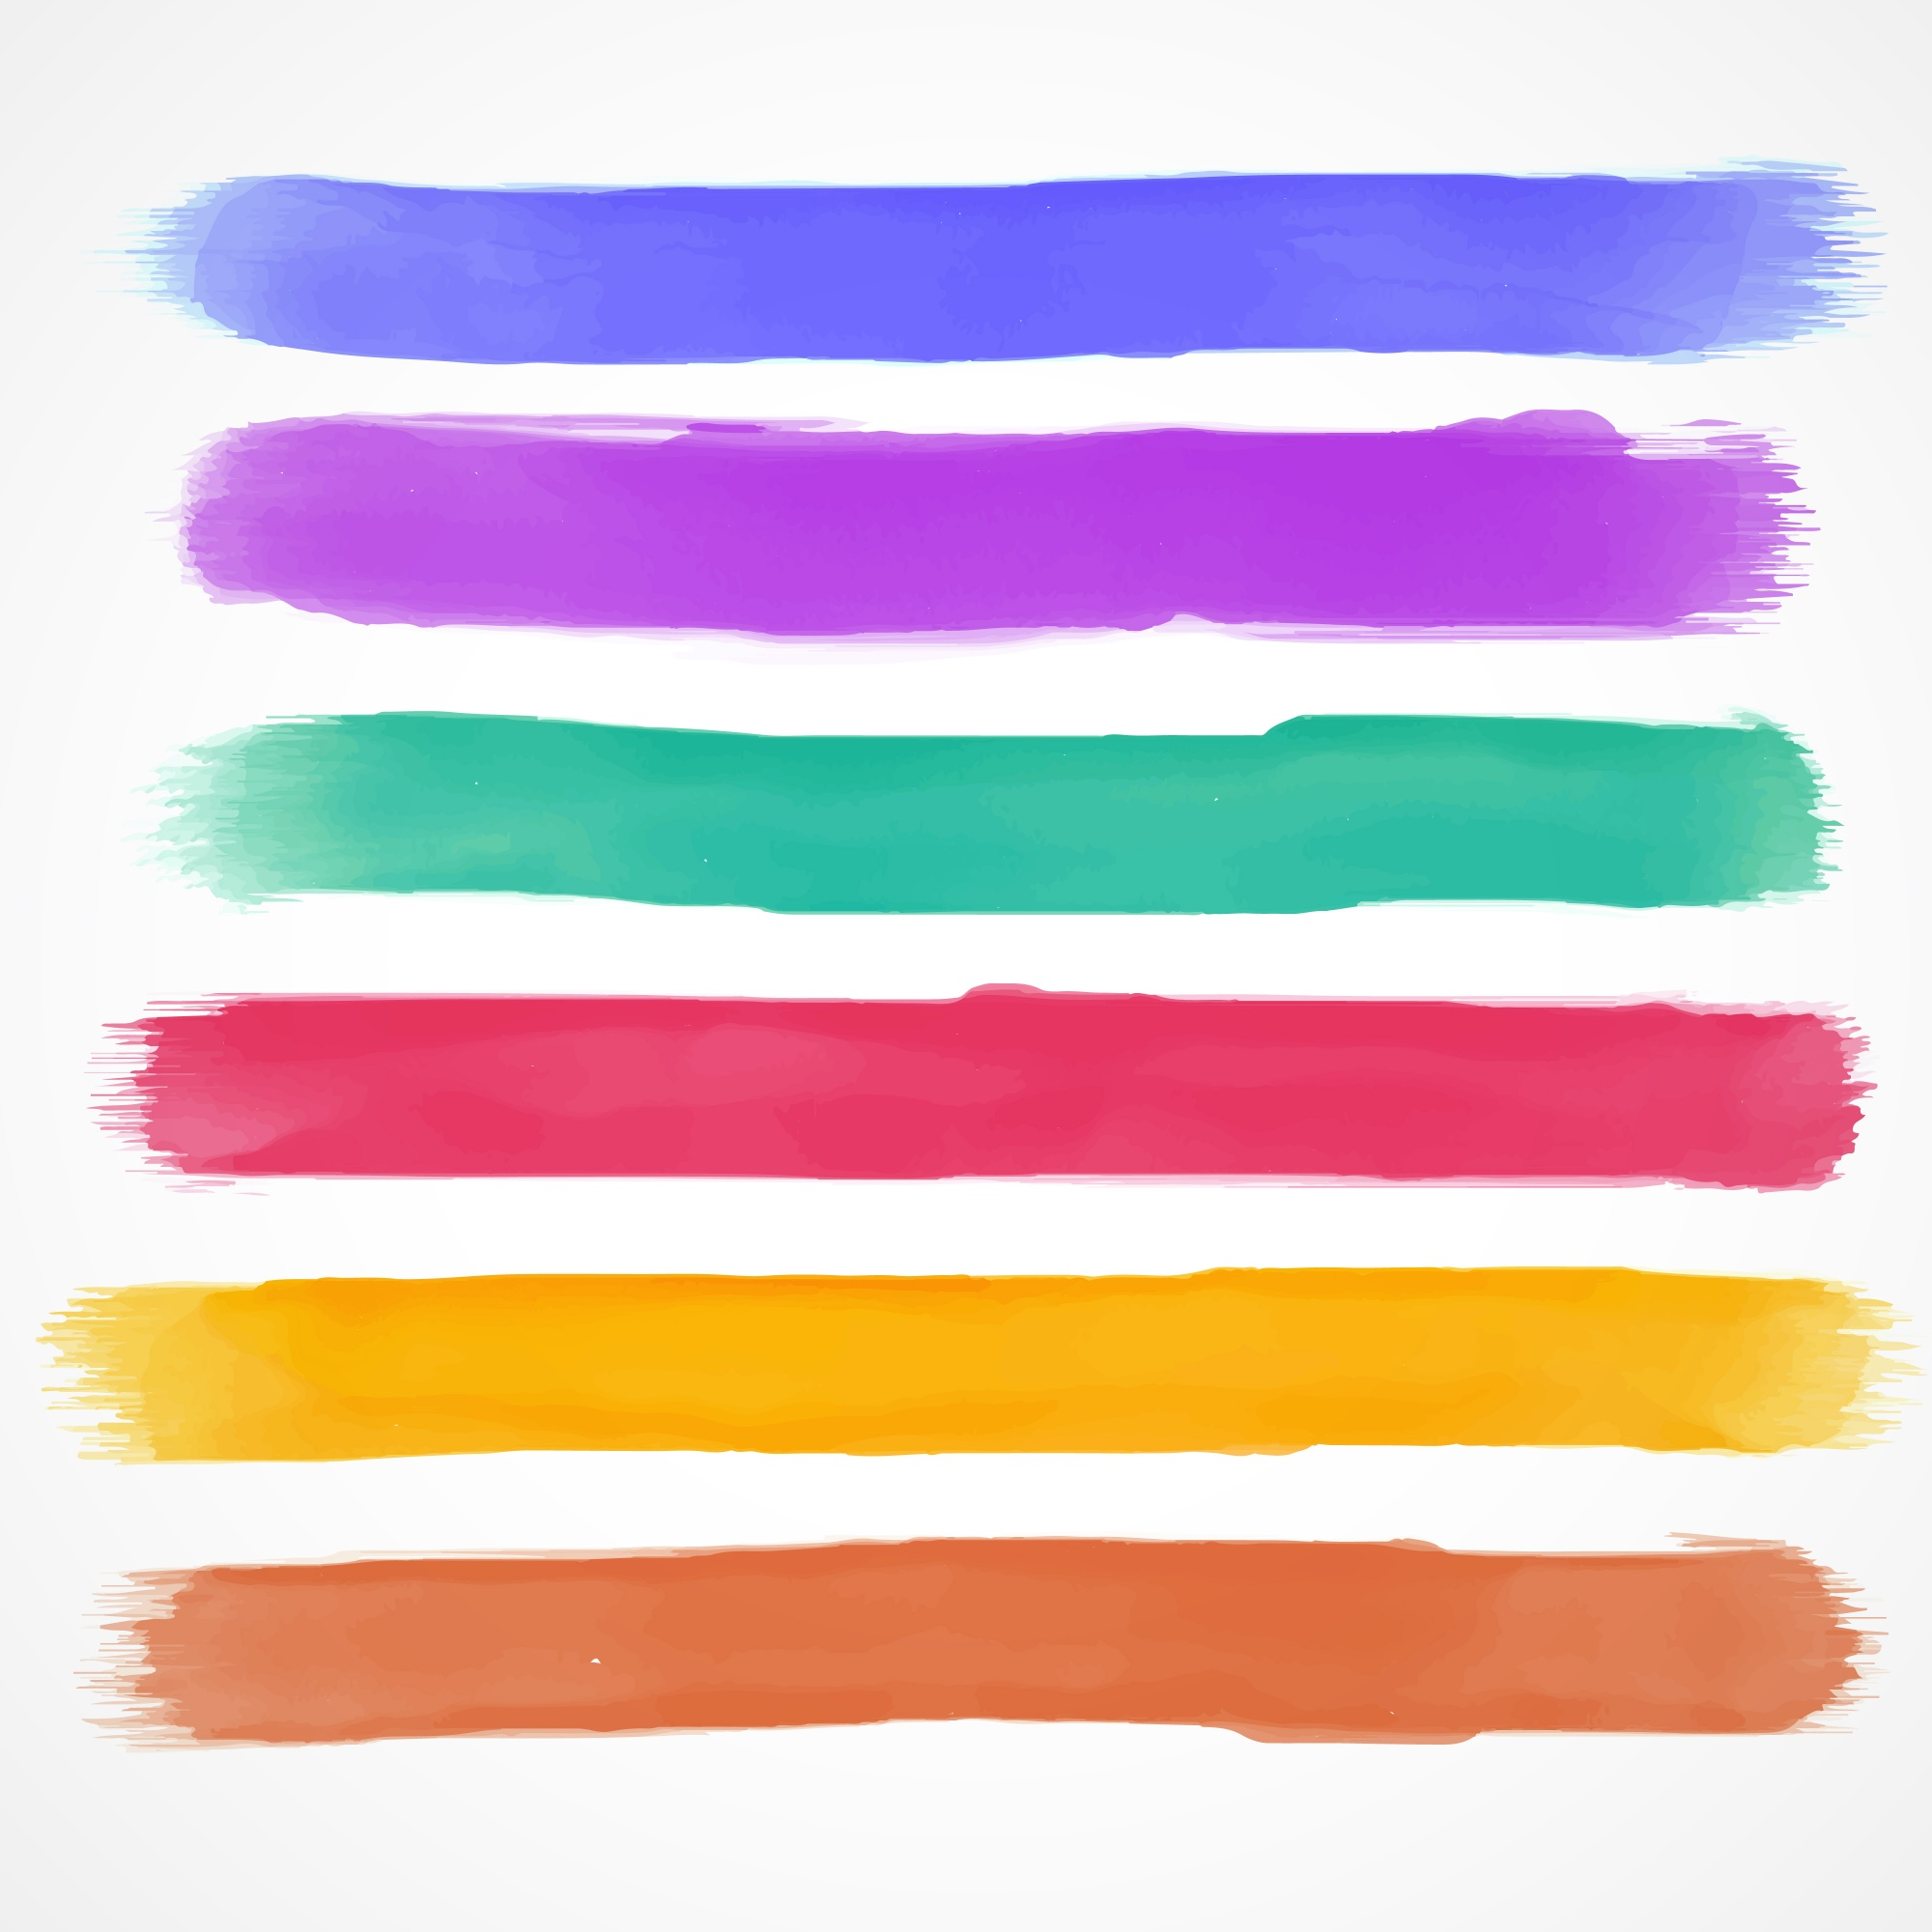 Watercolor brush stroke collection of 6